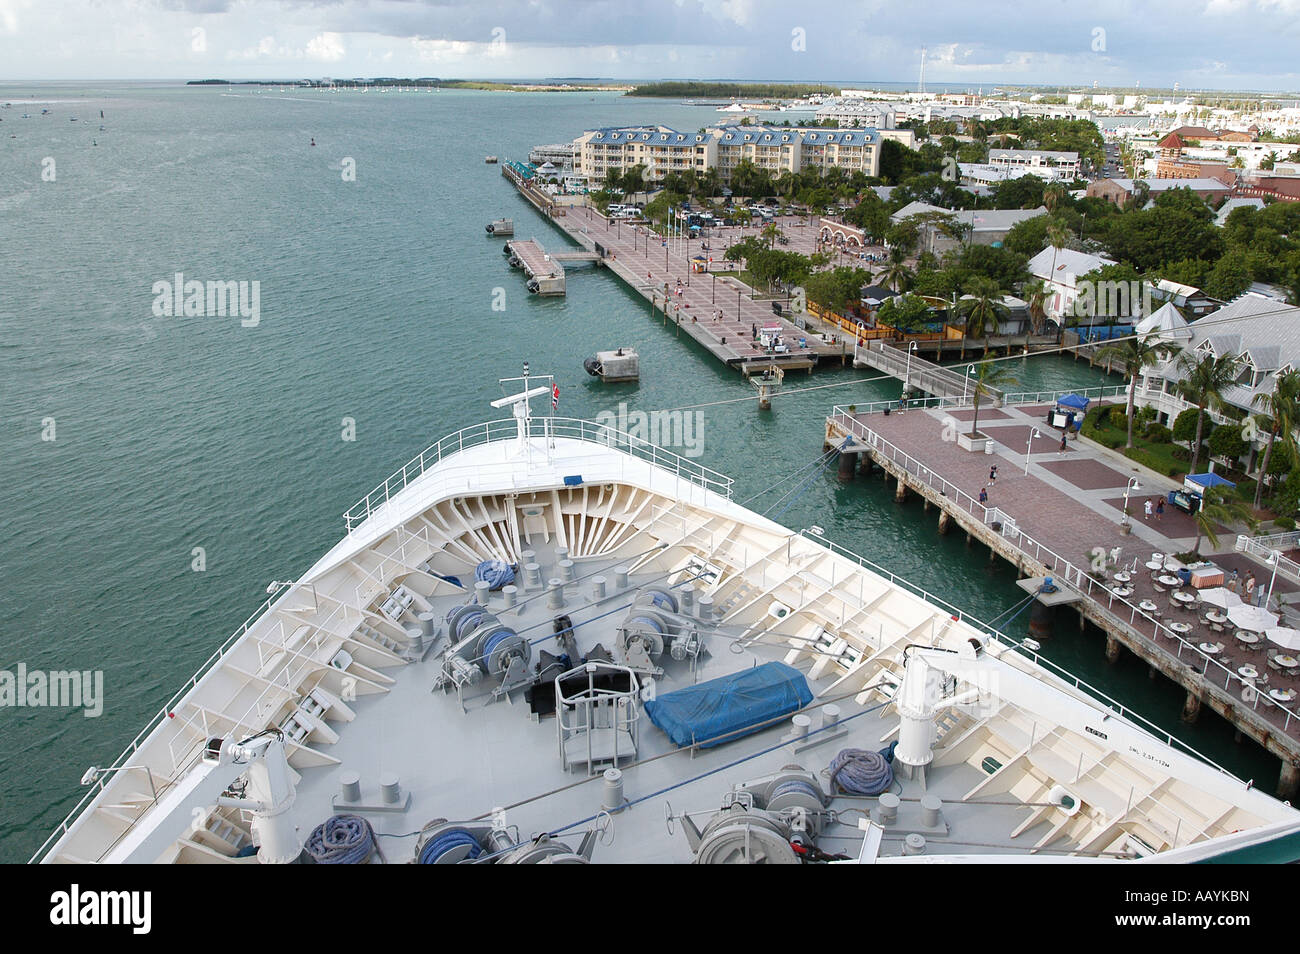 Rhapsody of the seas docking in Key West, florida - Stock Image